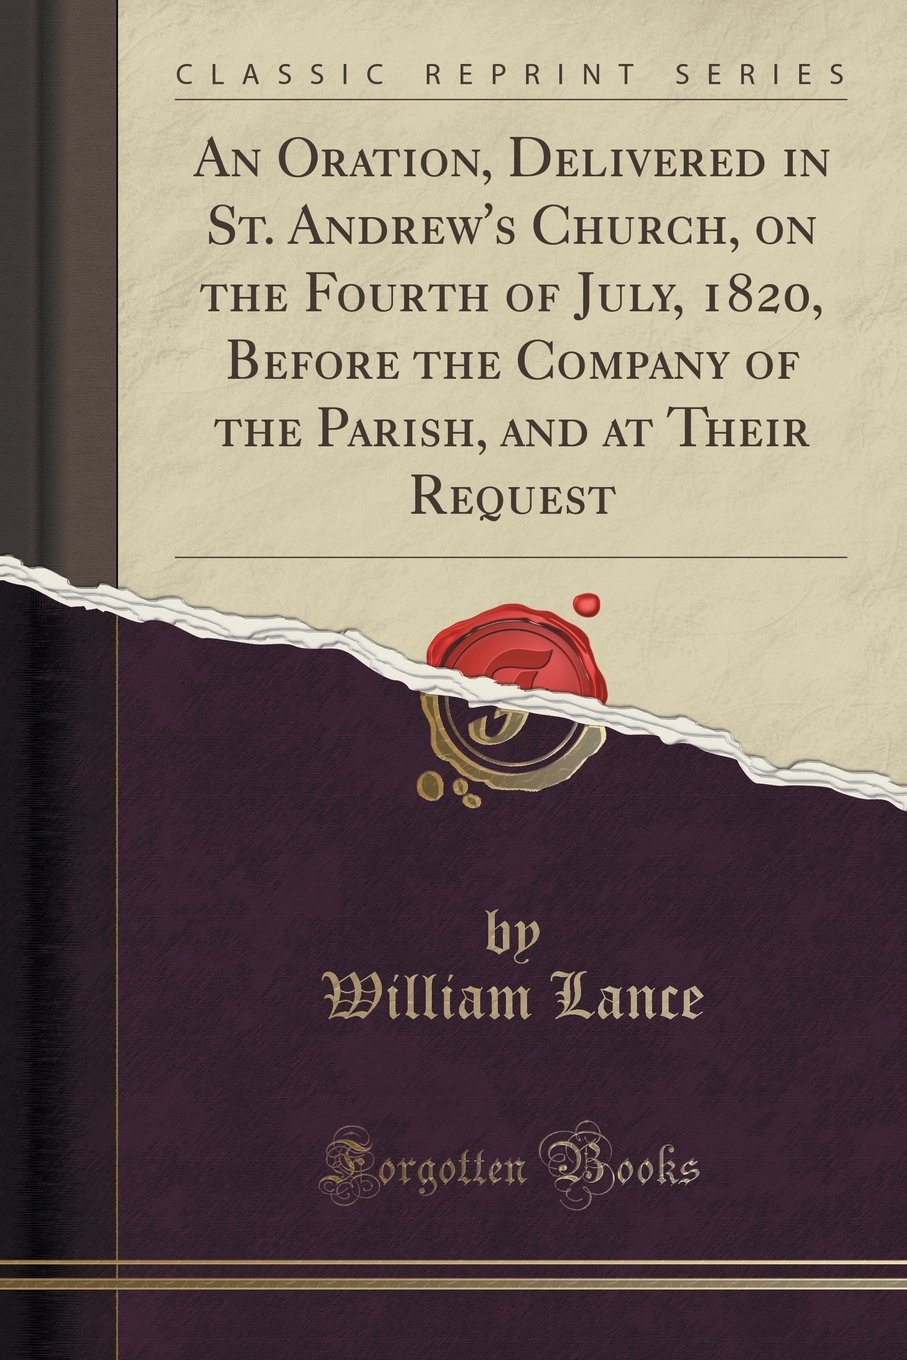 An Oration, Delivered in St. Andrew's Church, on the Fourth of July, 1820, Before the Company of the Parish, and at Their Request (Classic Reprint) pdf epub